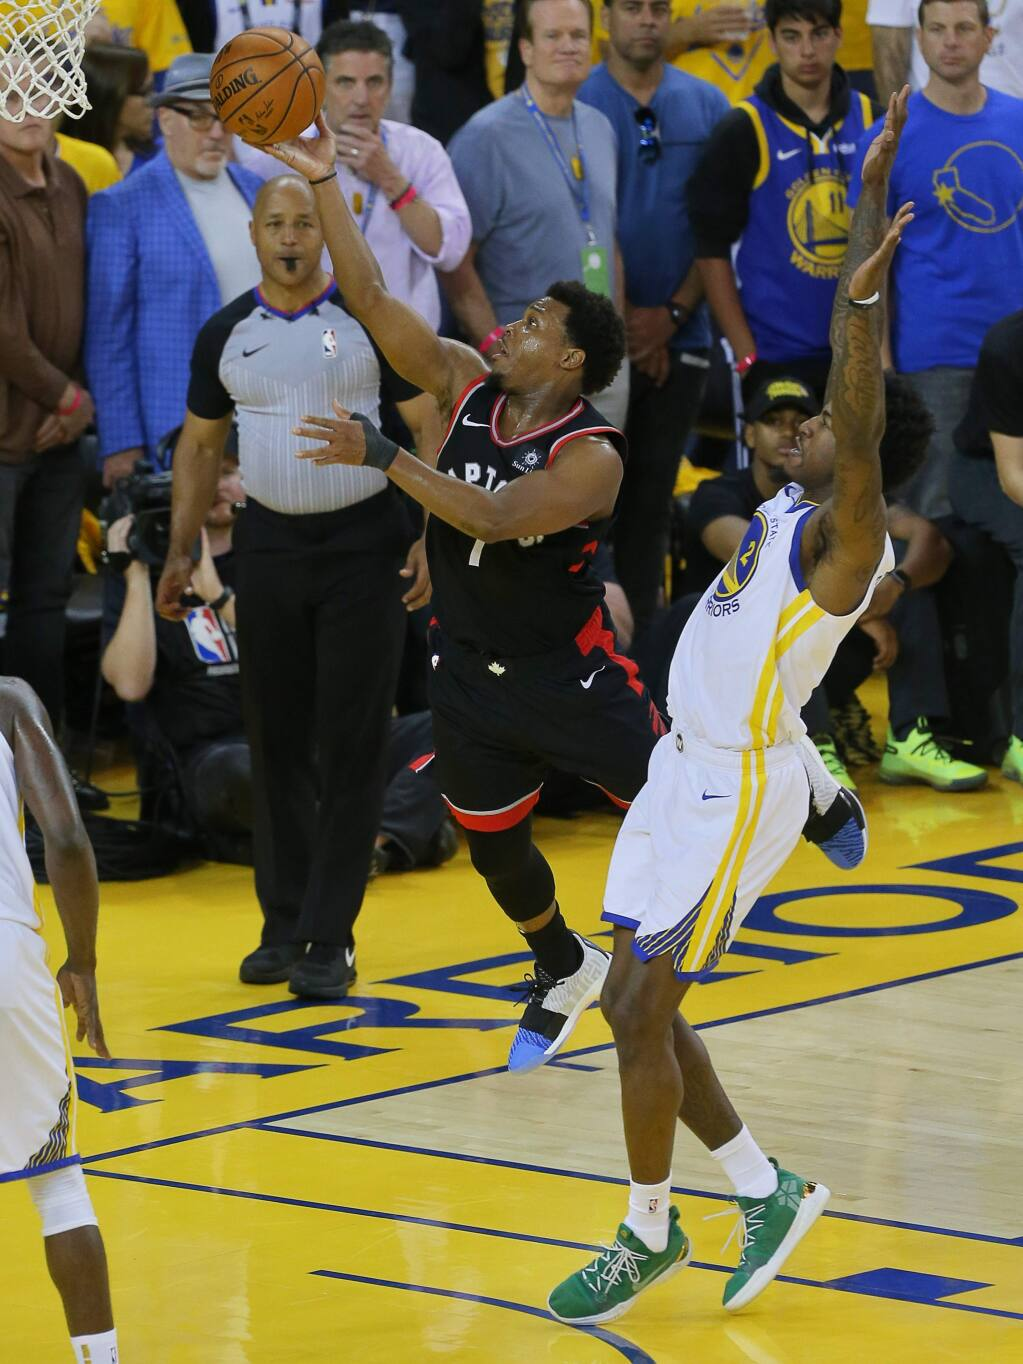 Toronto Raptors guard Kyle Lowry lays the ball in past Golden State Warriors forward Jordan Bell during game 3 of the NBA Finals in Oakland on Wednesday, June 5, 2019. (Christopher Chung/ The Press Democrat)